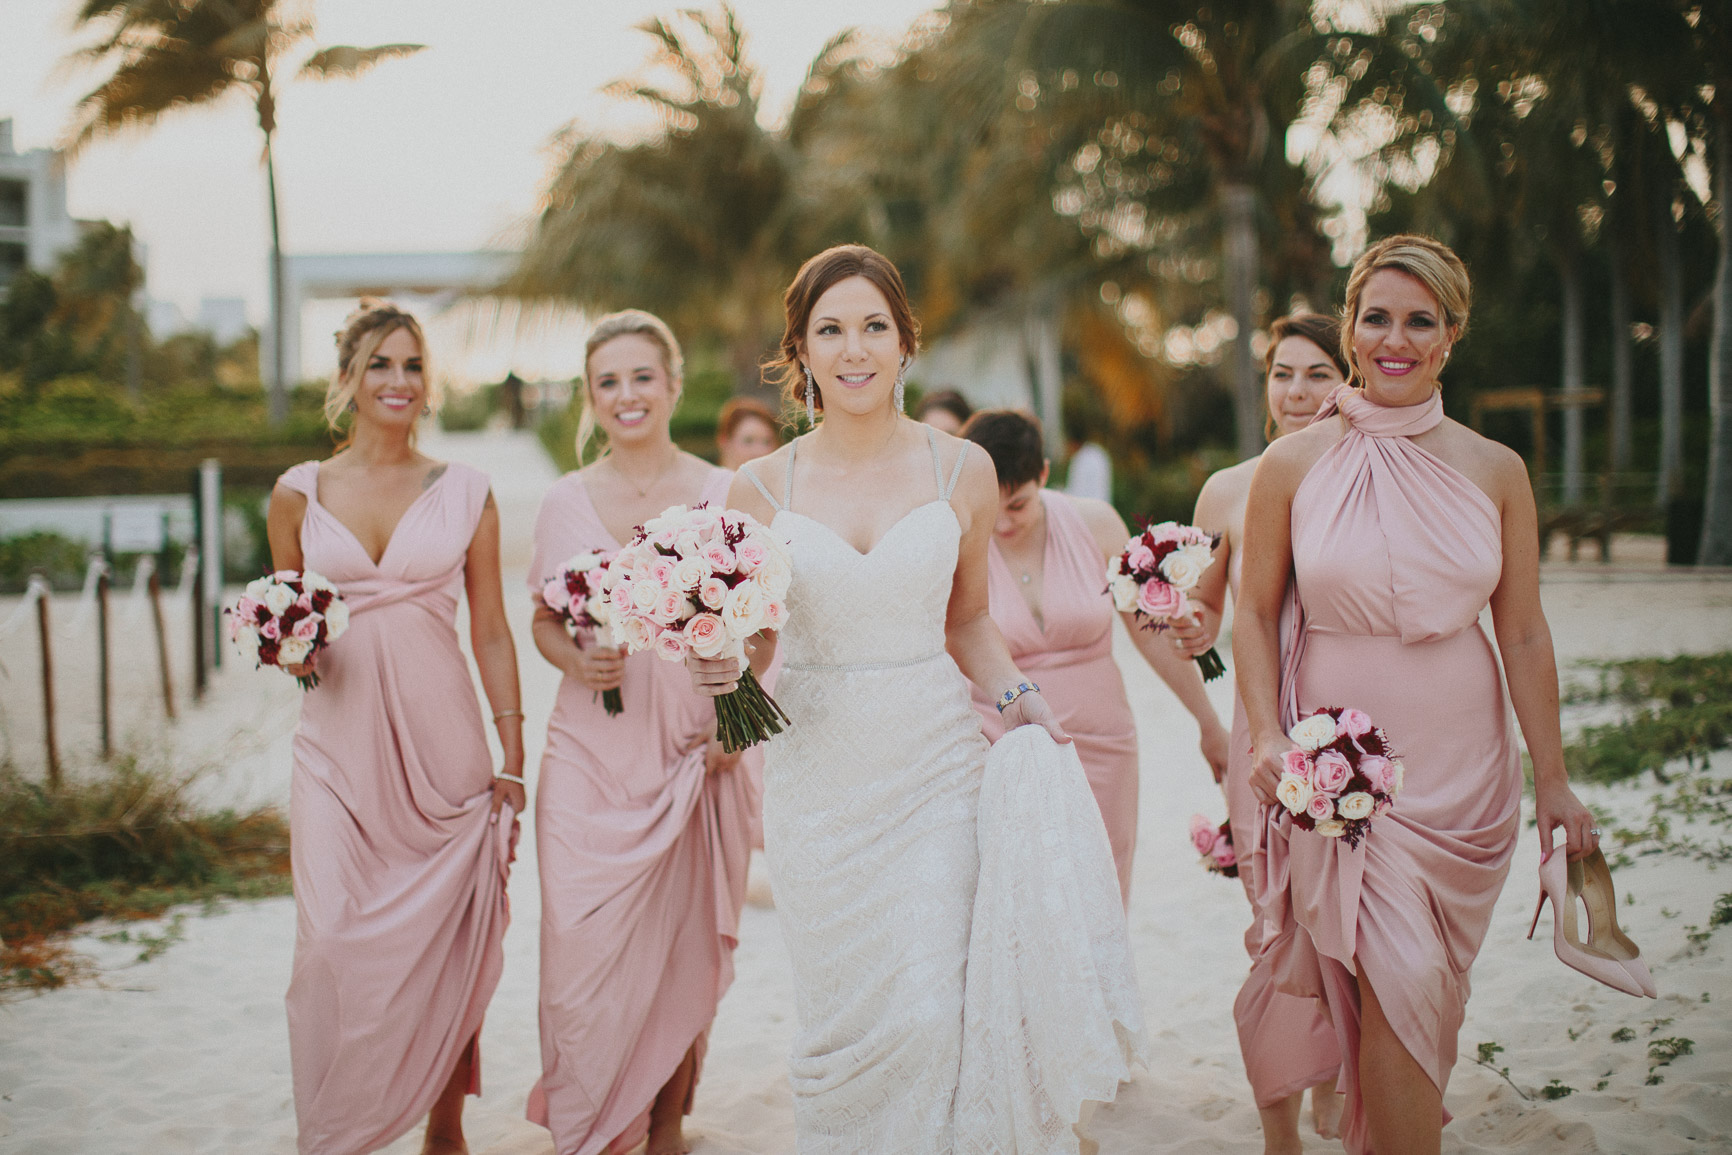 Cancun Bridesmaids Destination Wedding Photographer